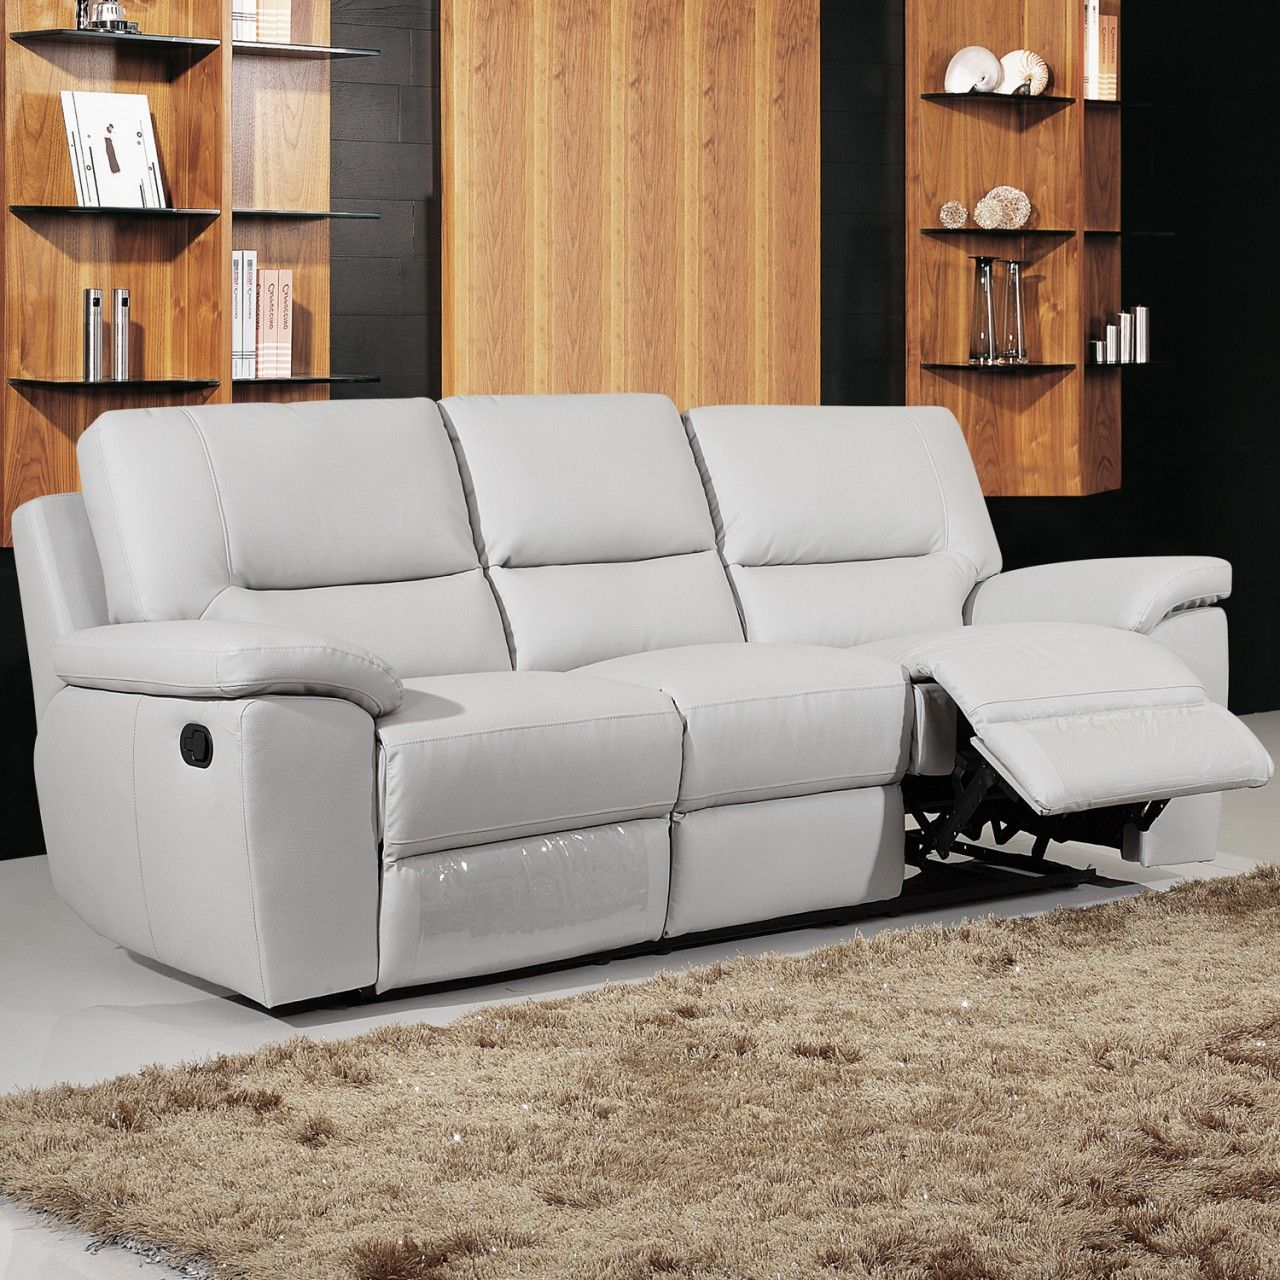 Awesome Light Grey Leather Reclining Sofa Fancy Light Grey